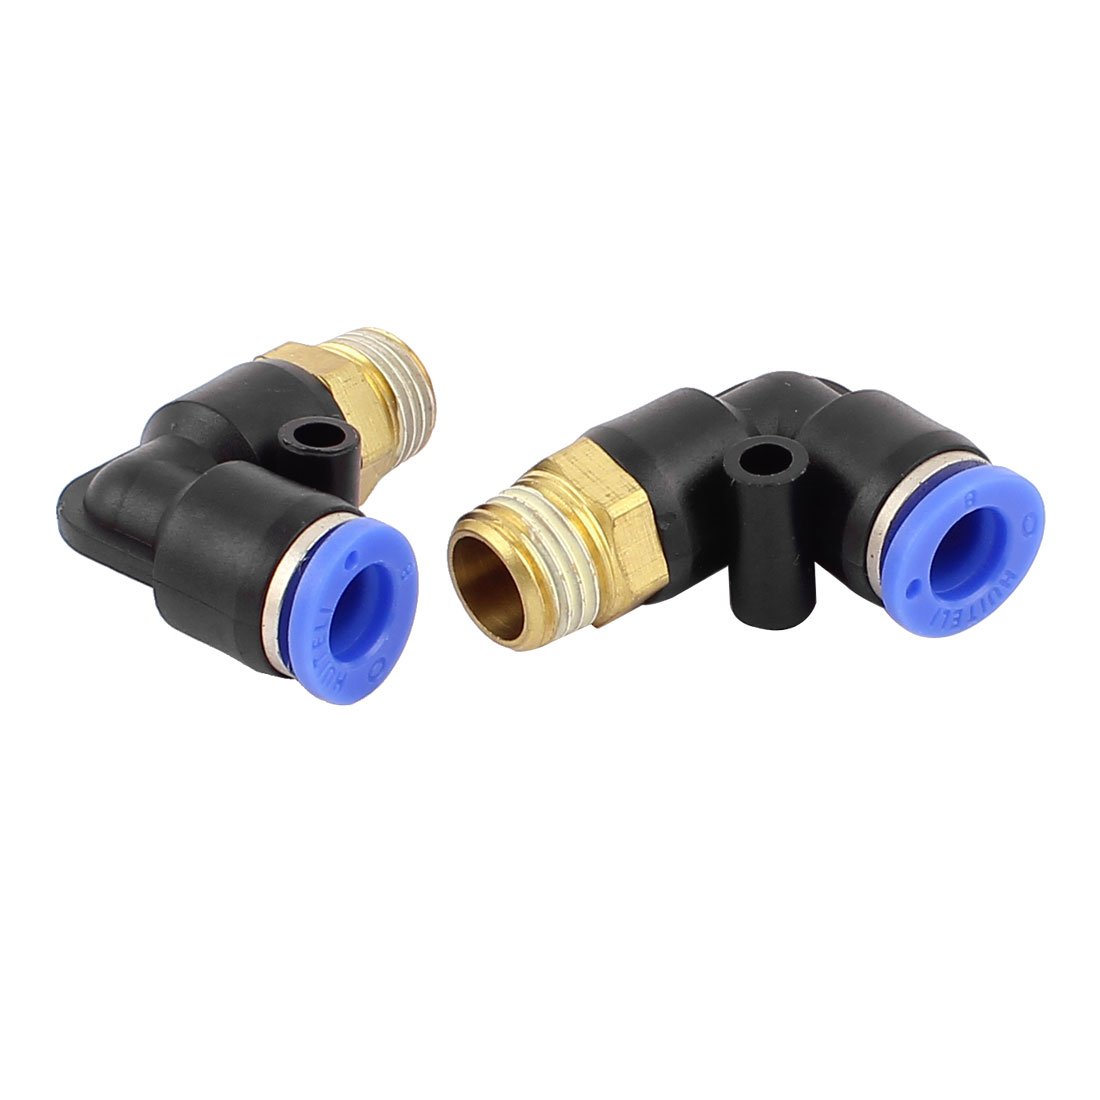 "1/4""PT Male Thread to 8mm Coupler 90 Degree Quick Push in Fittings 2 Pcs"